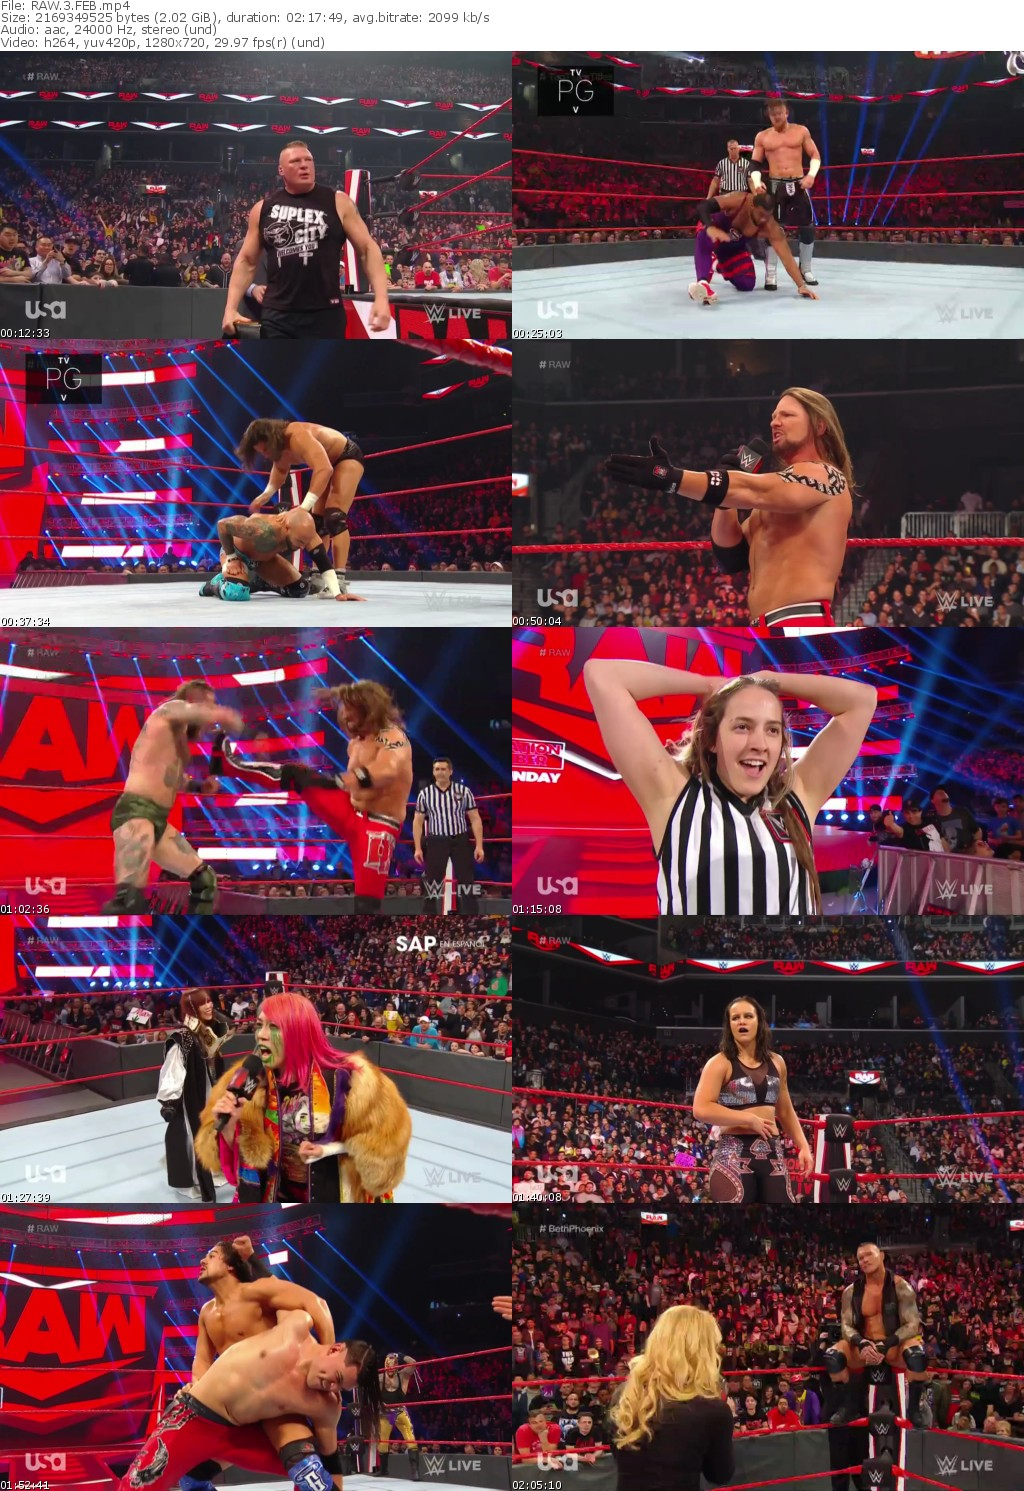 WWE Monday Night Raw 2 March (2020) HDTVRip Full Movie Download Mp4 High Quality HD